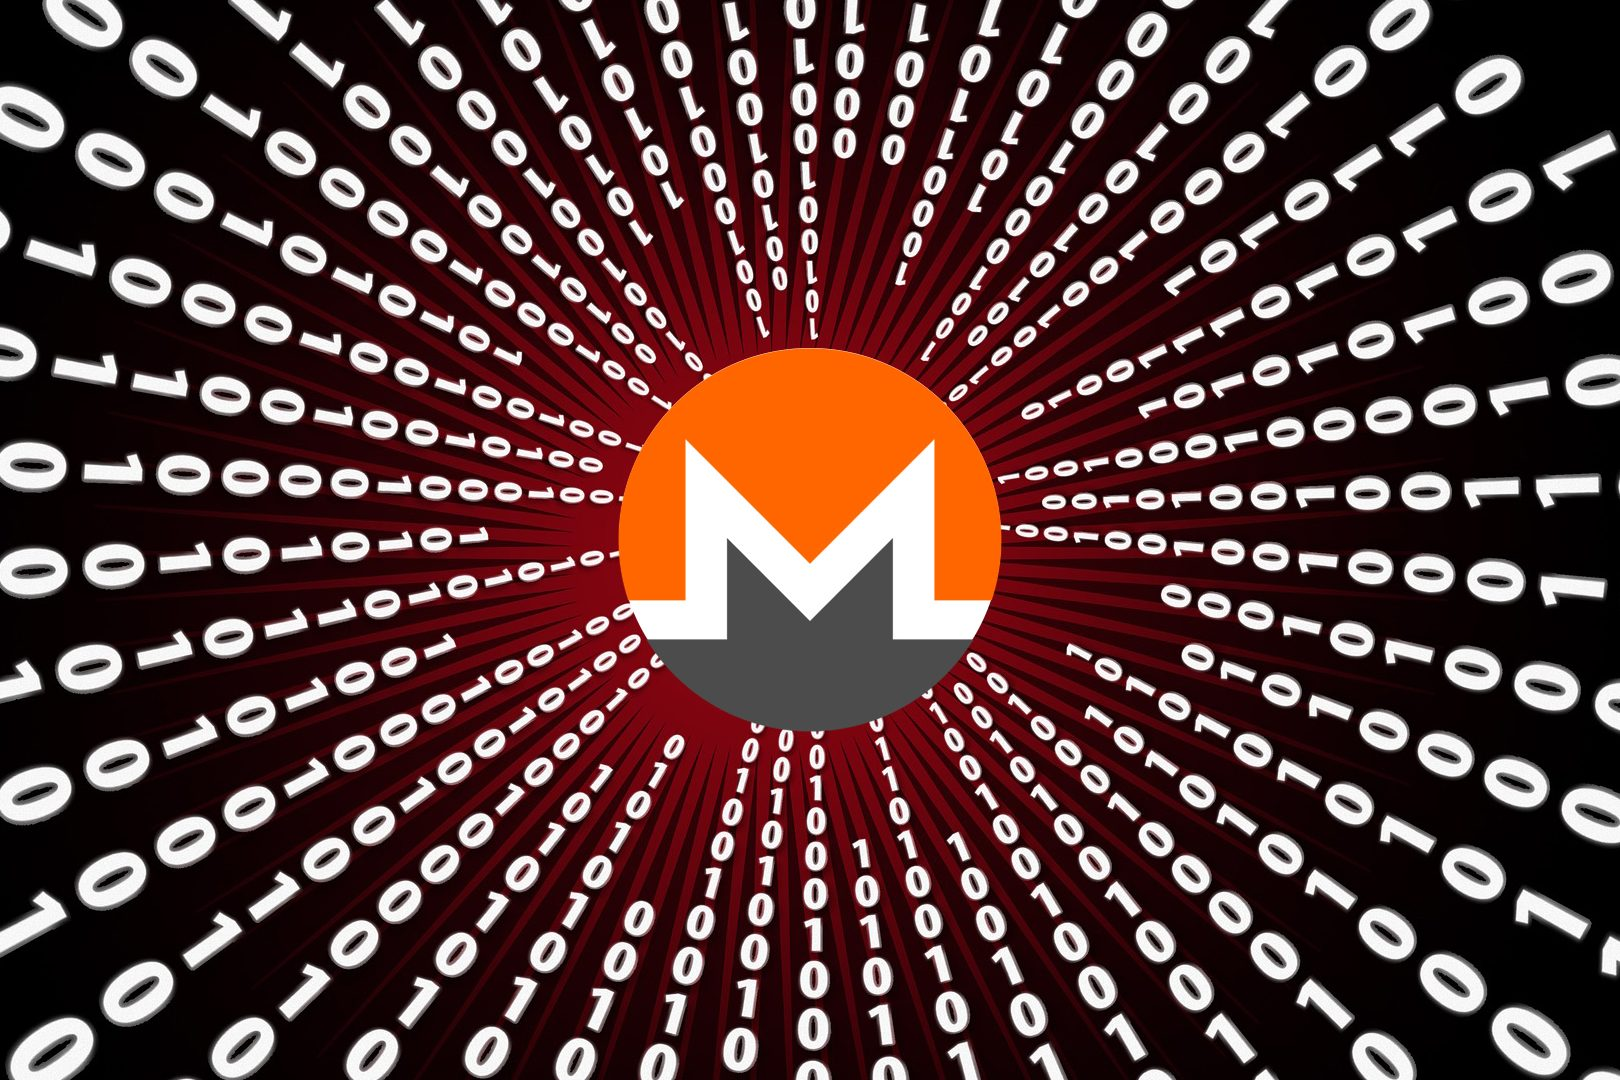 Criptomoeda, Monero, Criptosequestro